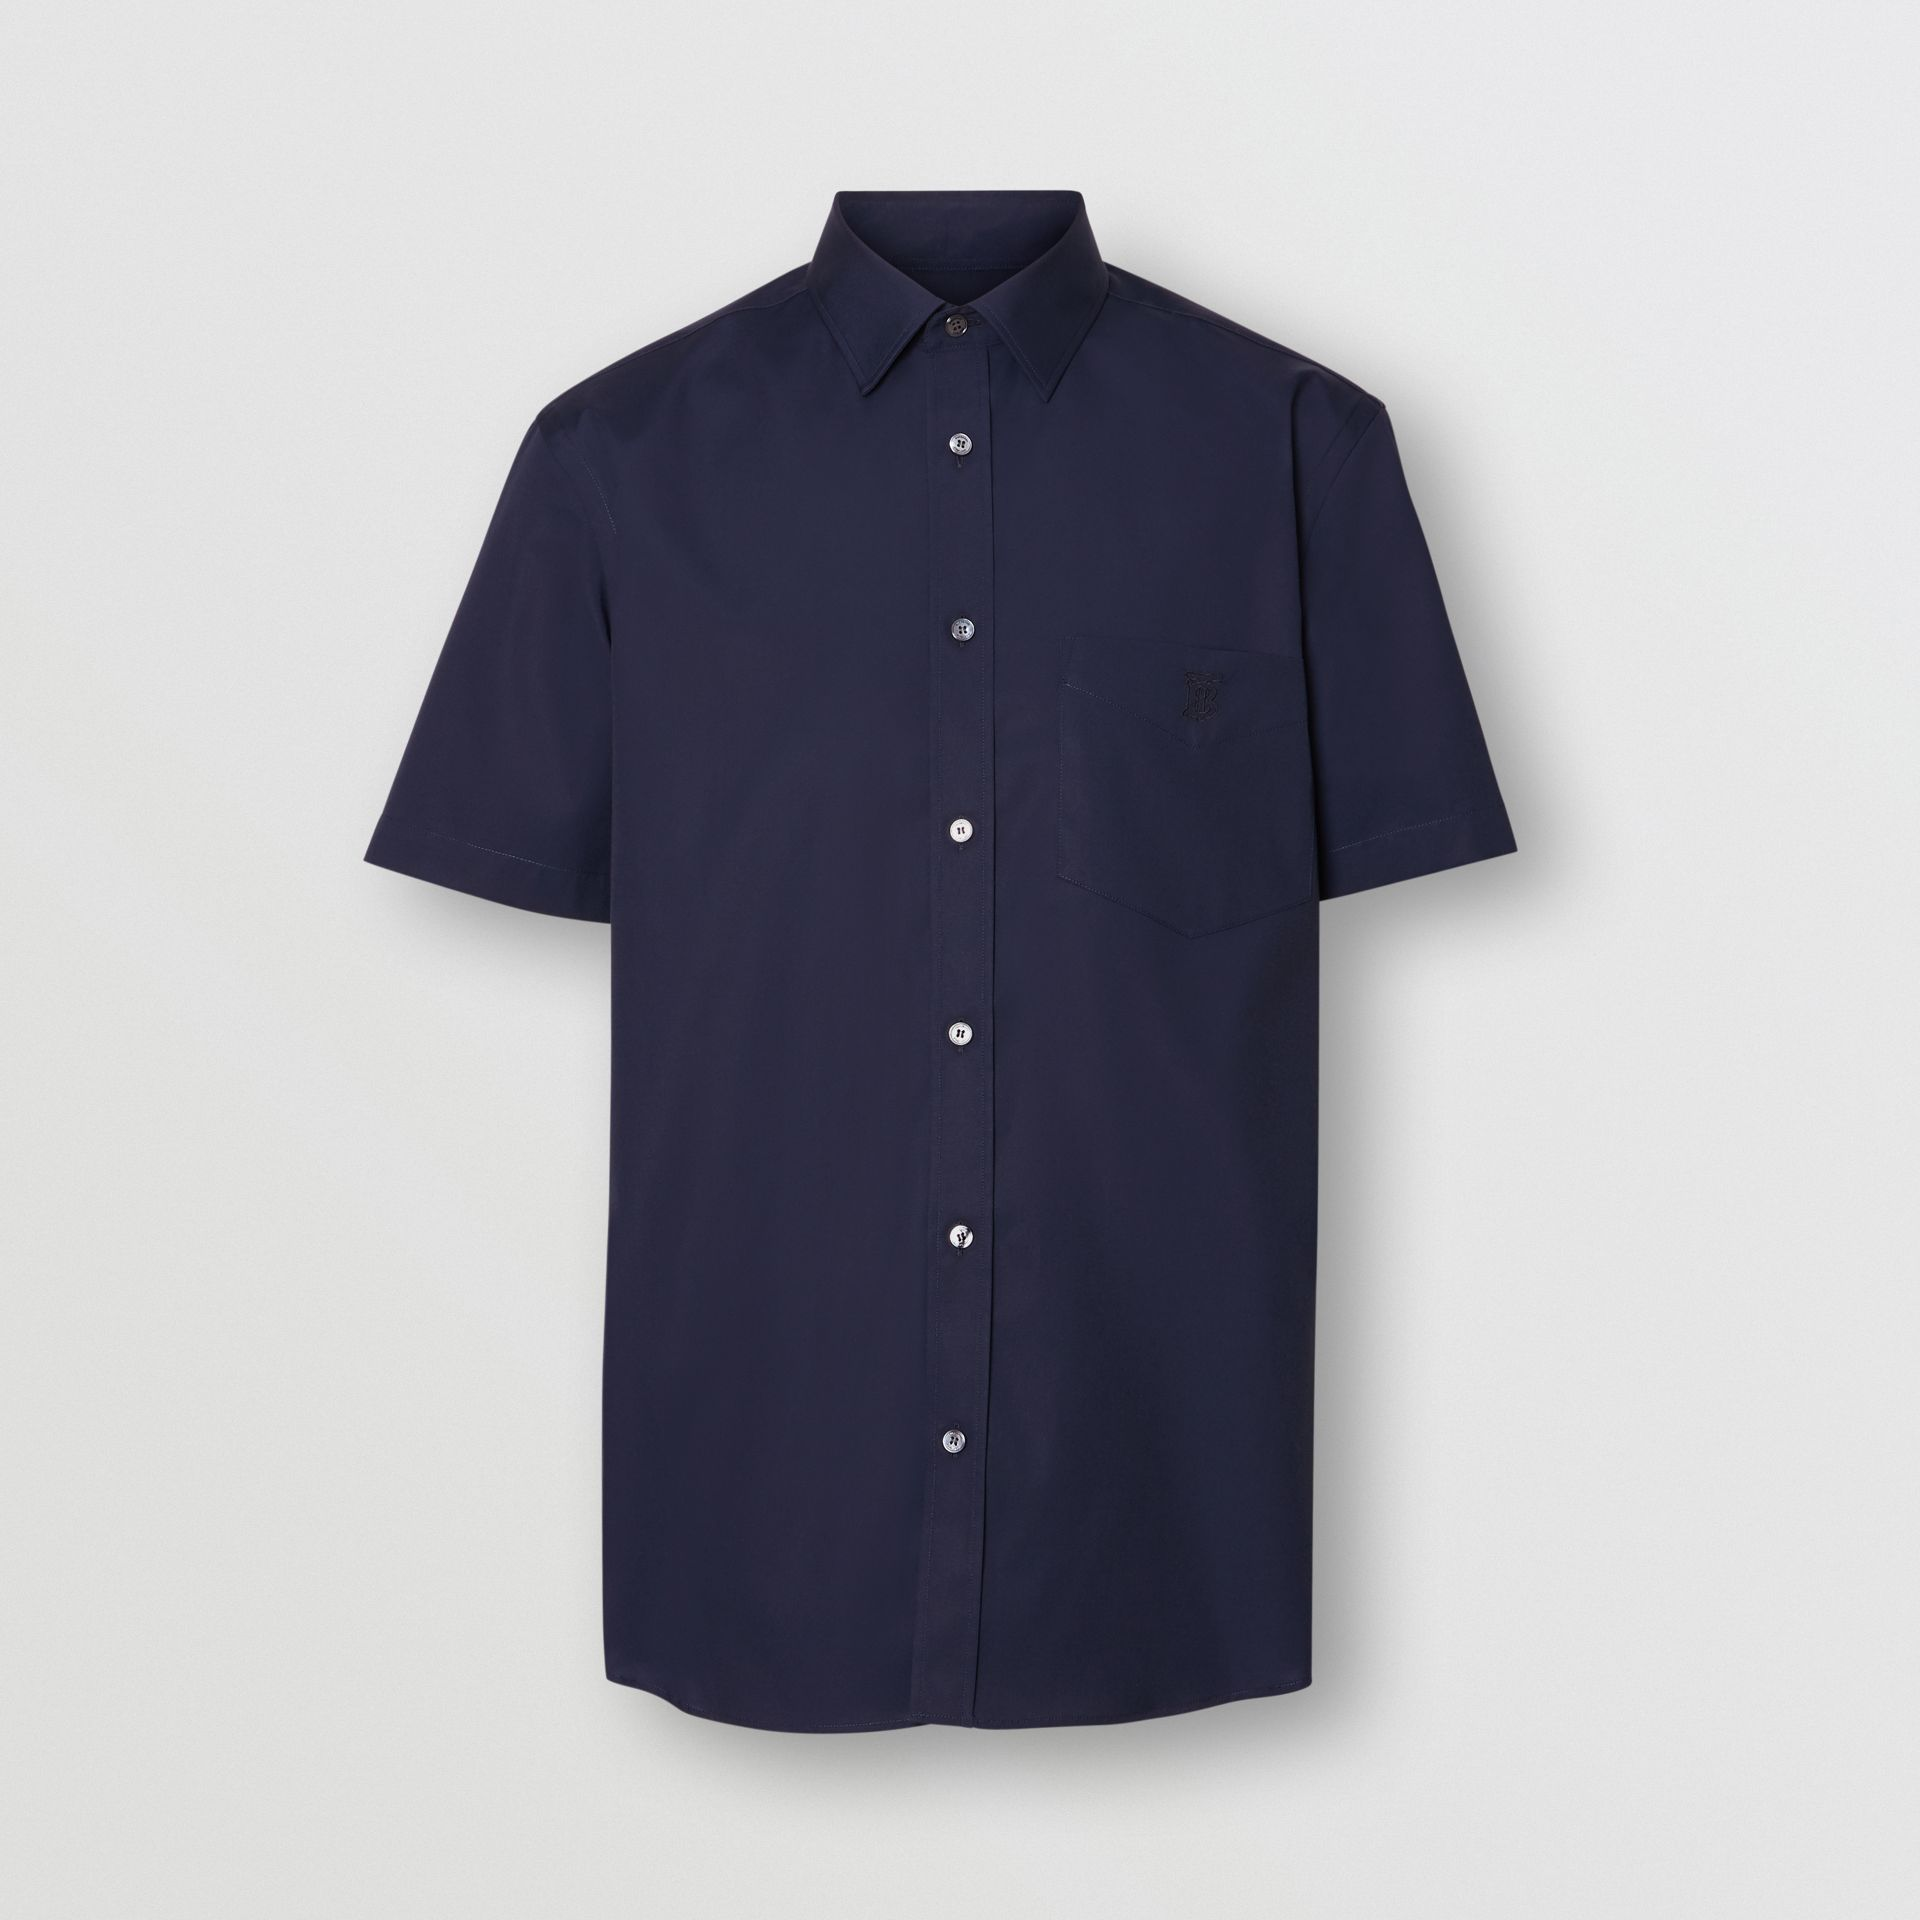 Short-sleeve Monogram Motif Stretch Cotton Shirt in Navy - Men | Burberry Australia - gallery image 3